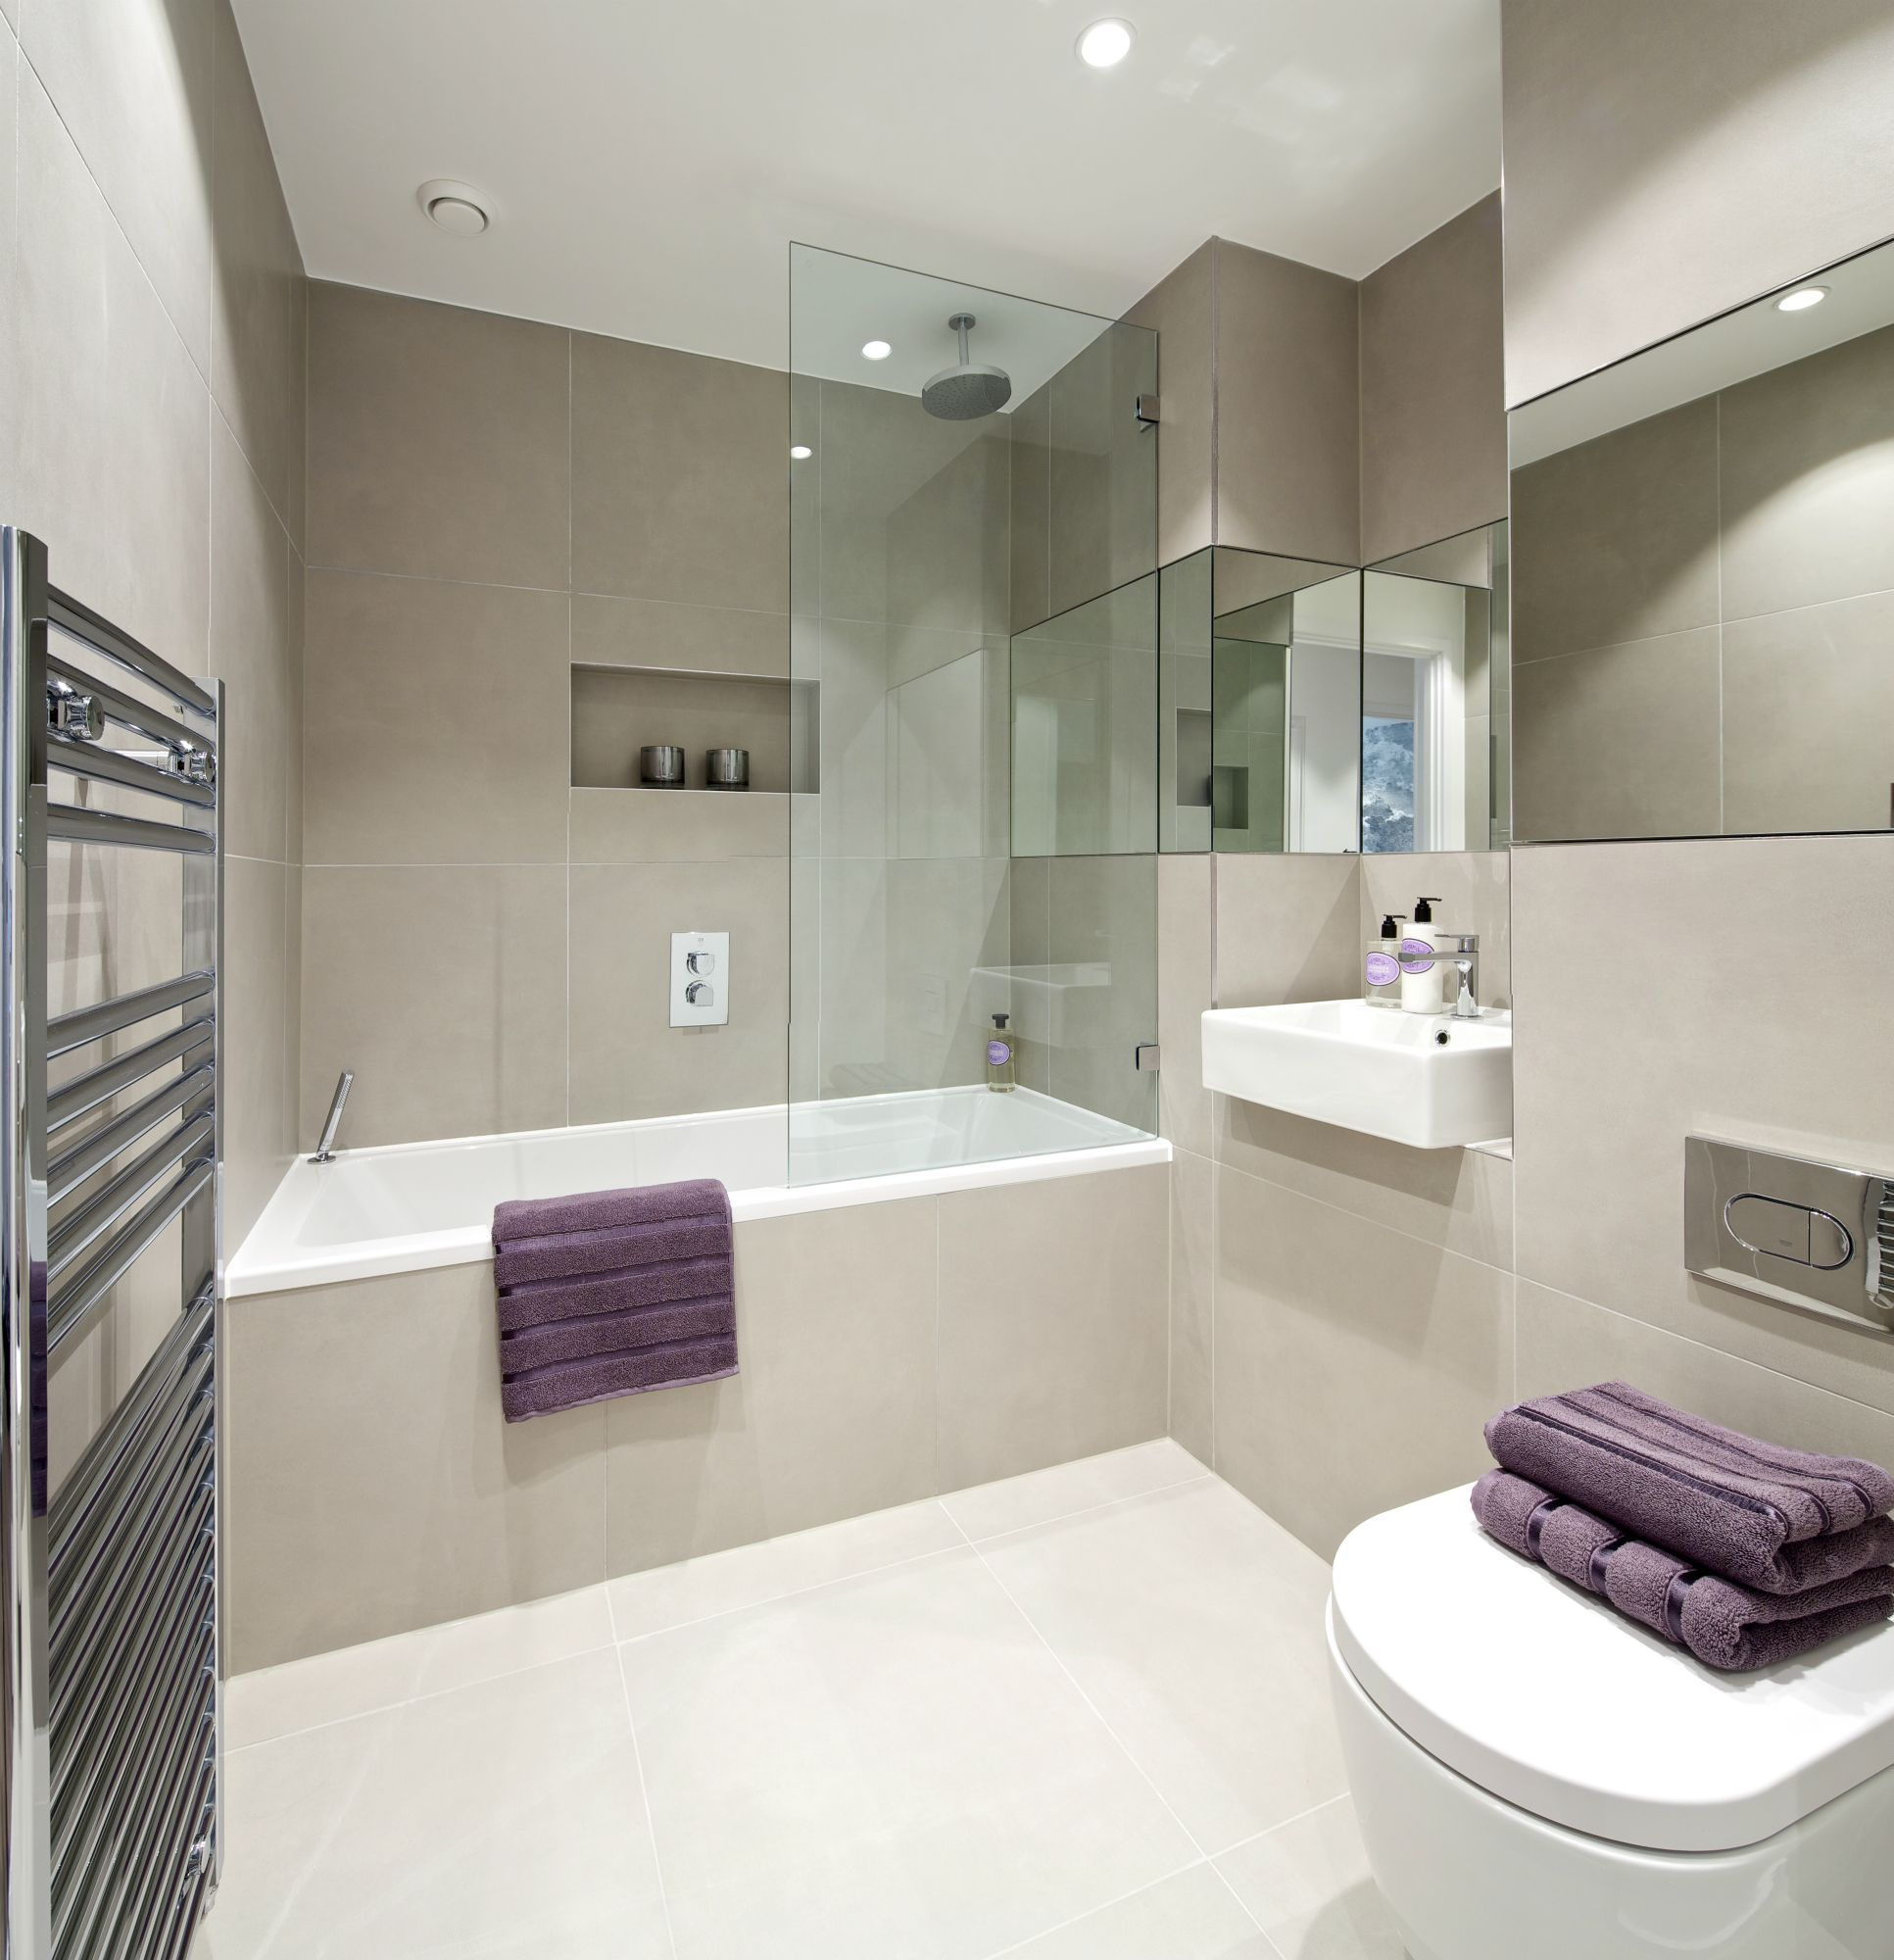 Stunning Home Interiors Bathroom Another Show Design By Suna Interior